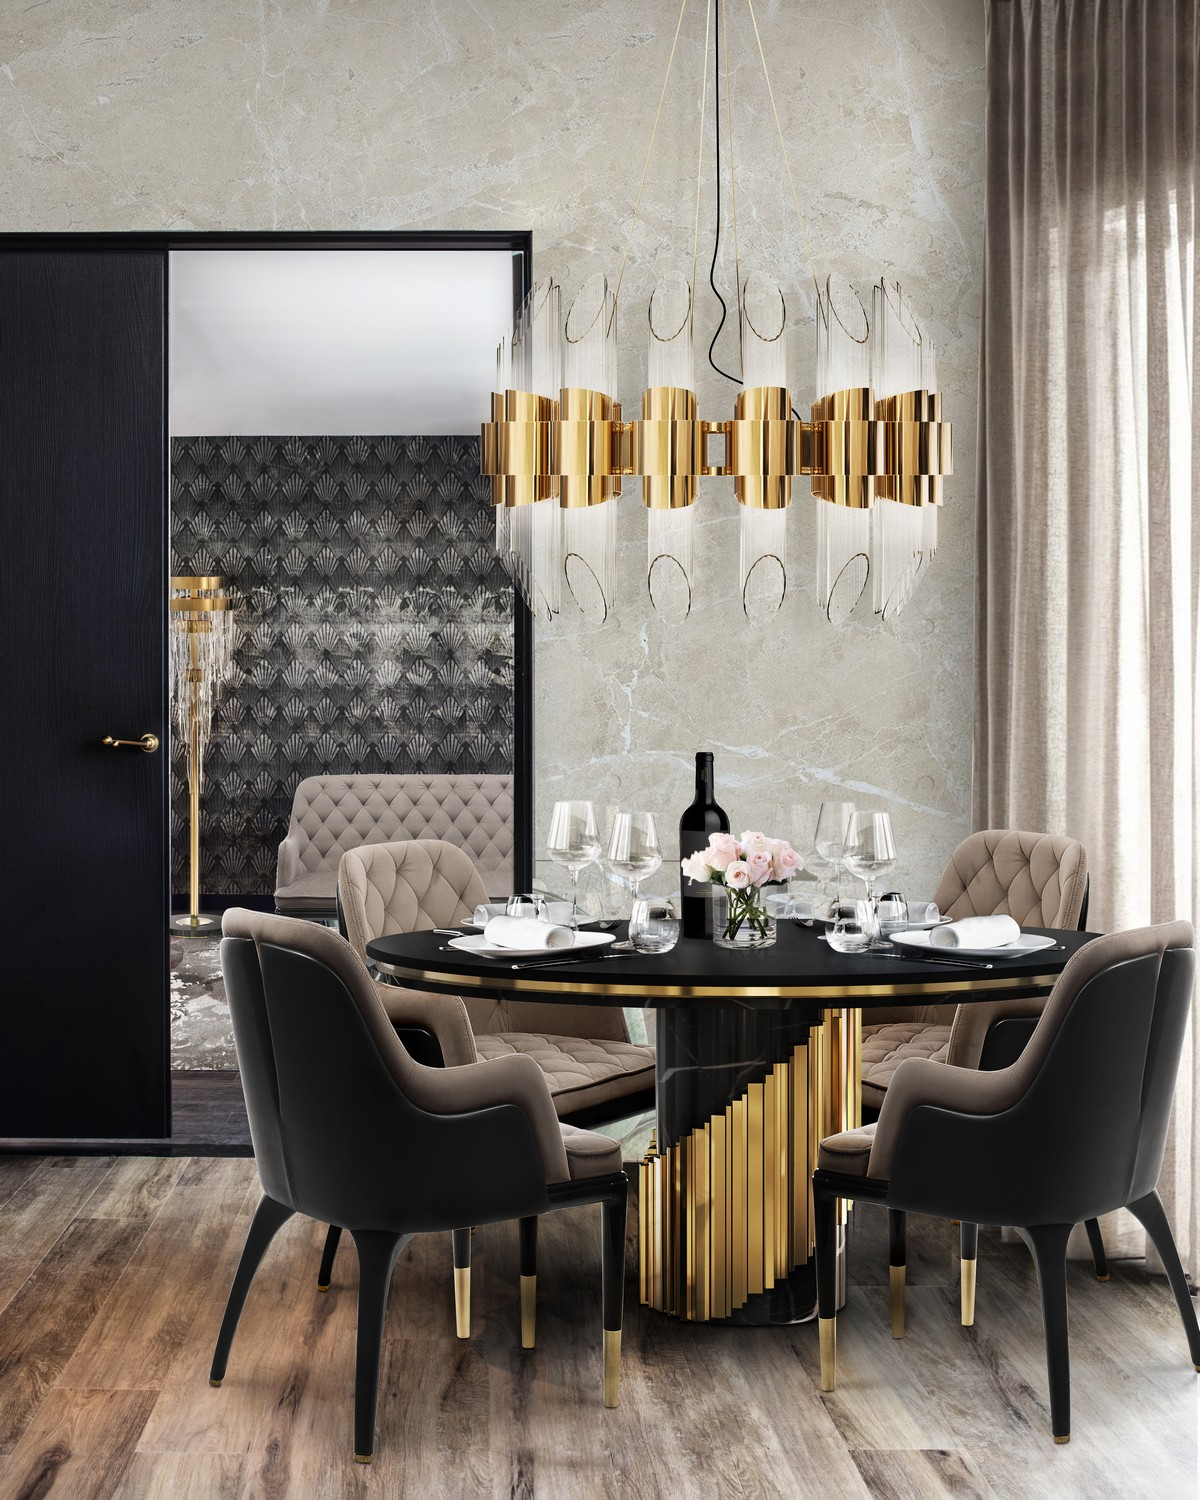 Luxury Dining Chairs You Will Find at Covet NYC luxury dining chairs Luxury Dining Chairs You Will Find at Covet NYC charla2